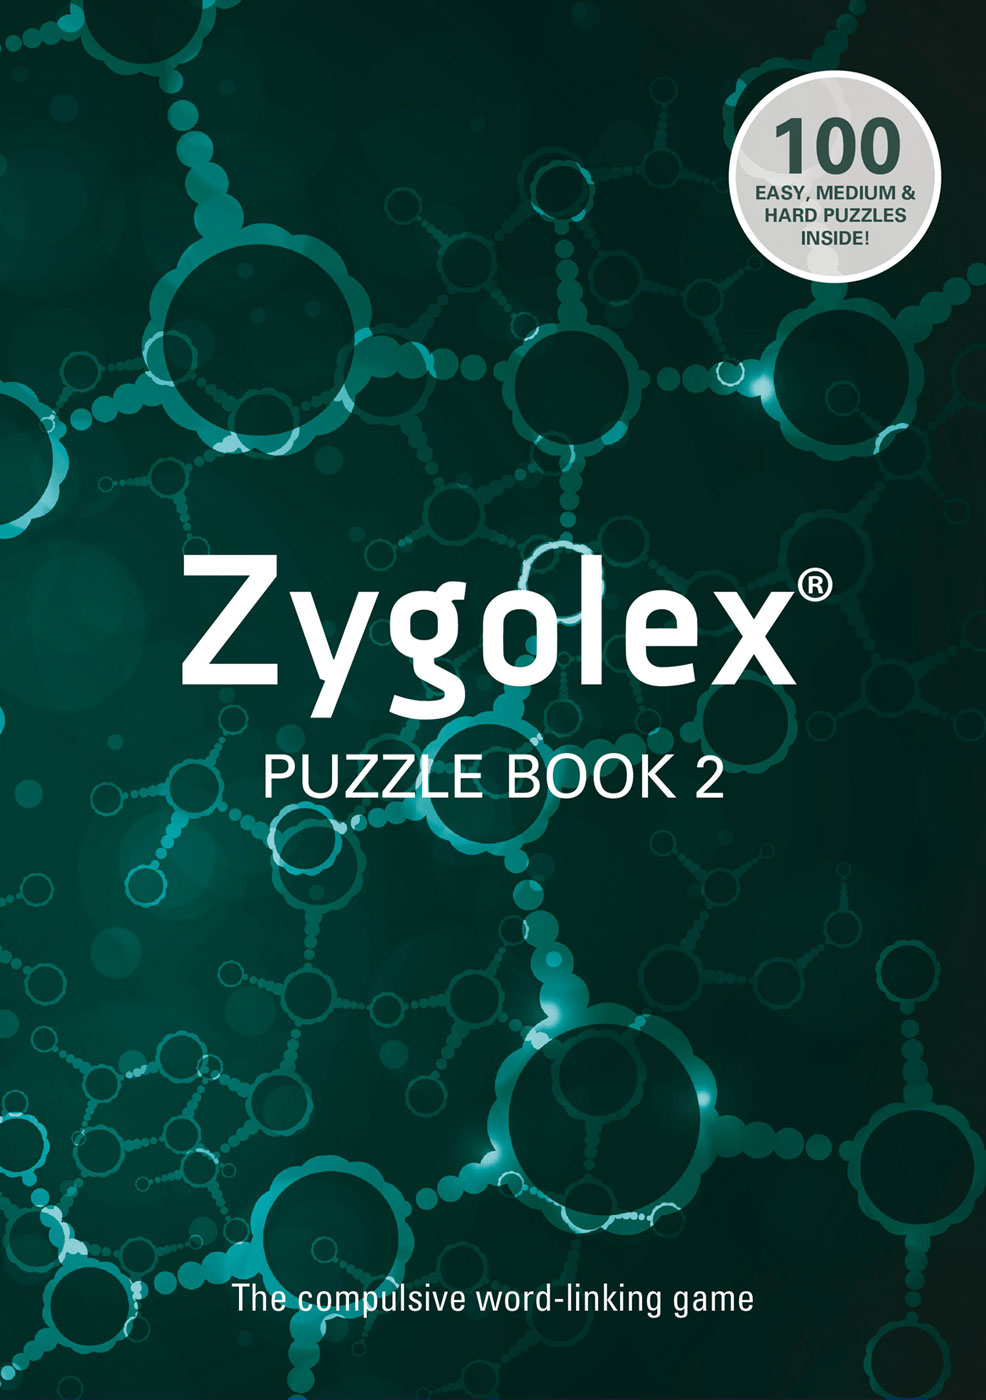 Zygolex books 1 and 2